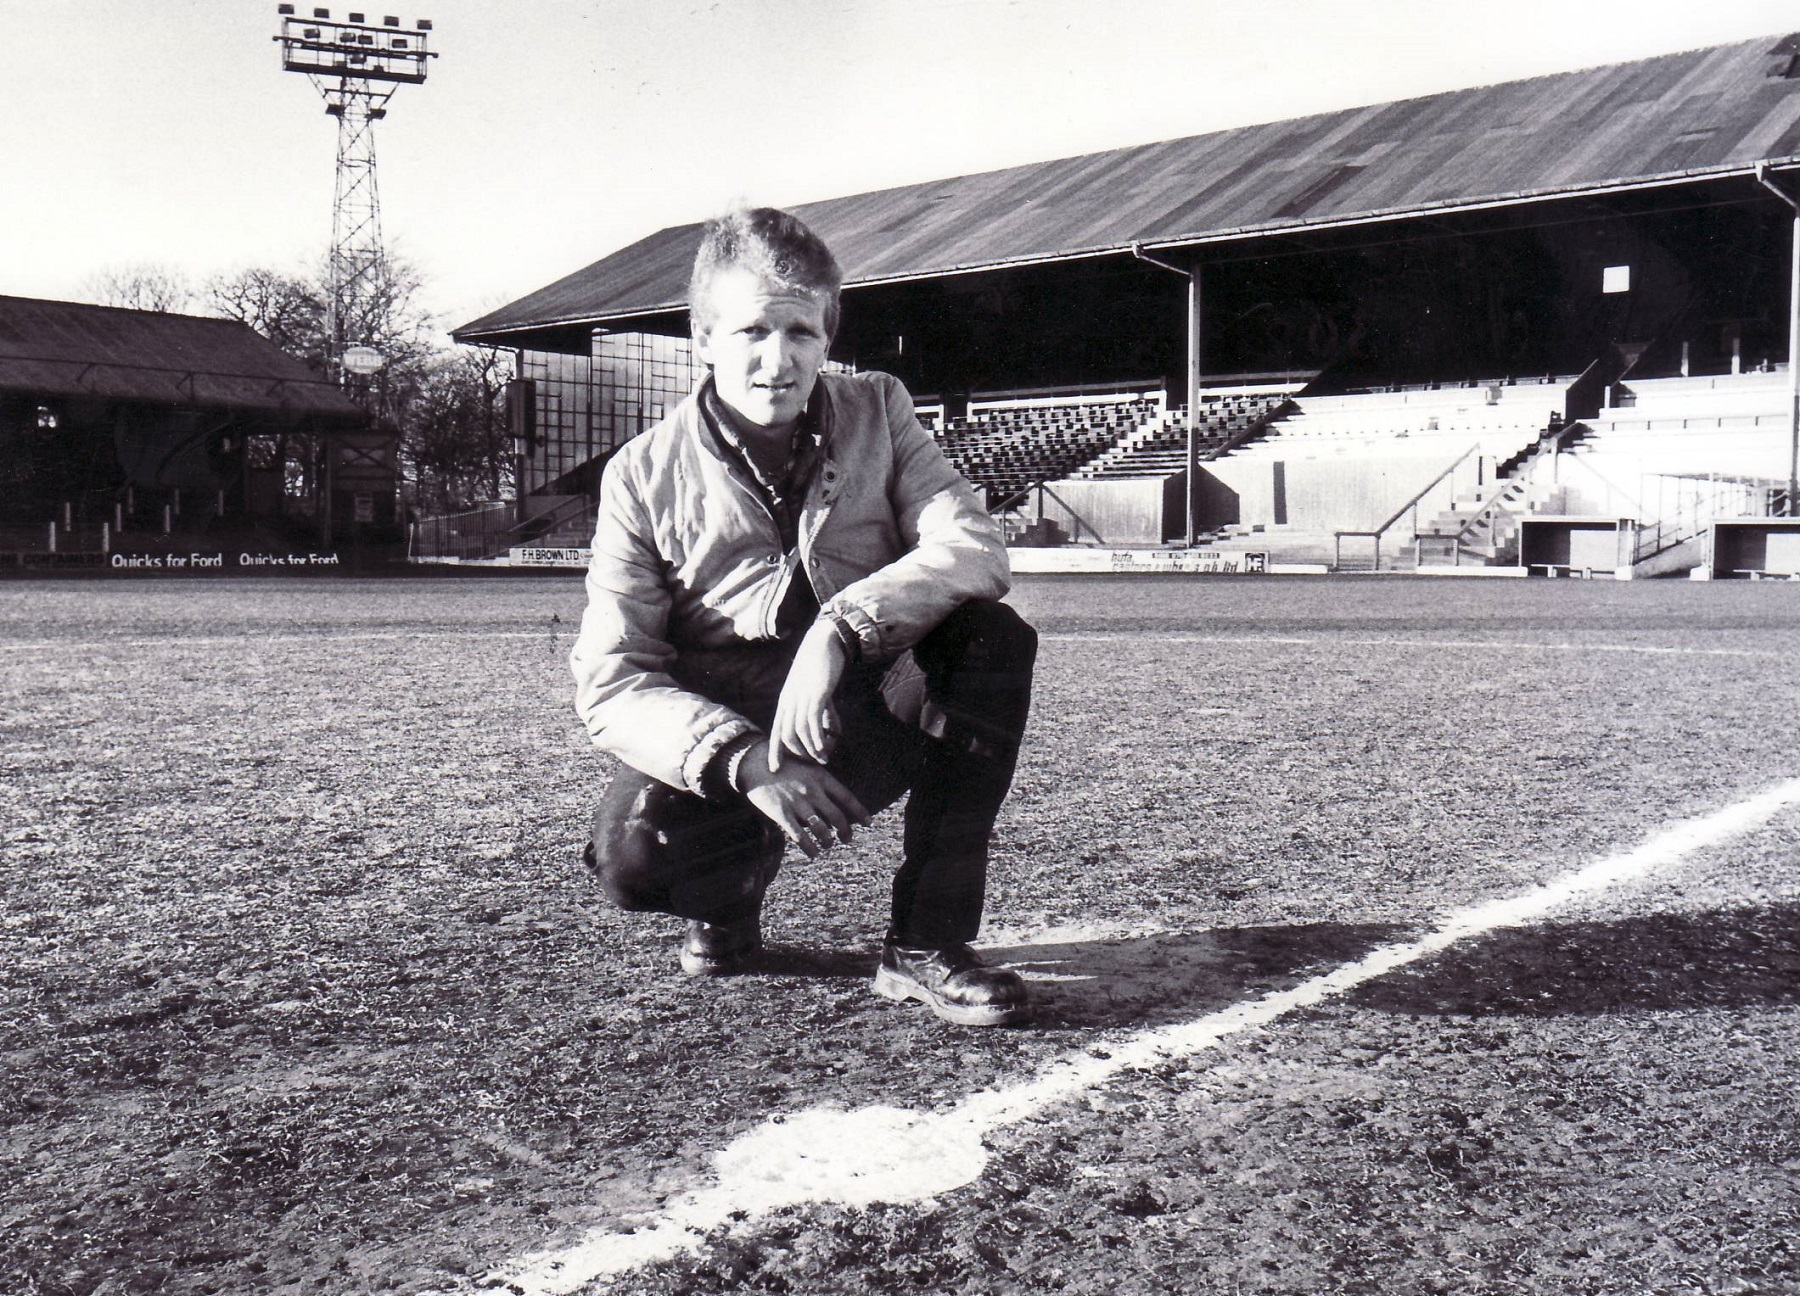 Rod Lester inspects a frozen pitch at Gigg Lane before the planned derby match against Bolton Wanderers on December 28, 1985